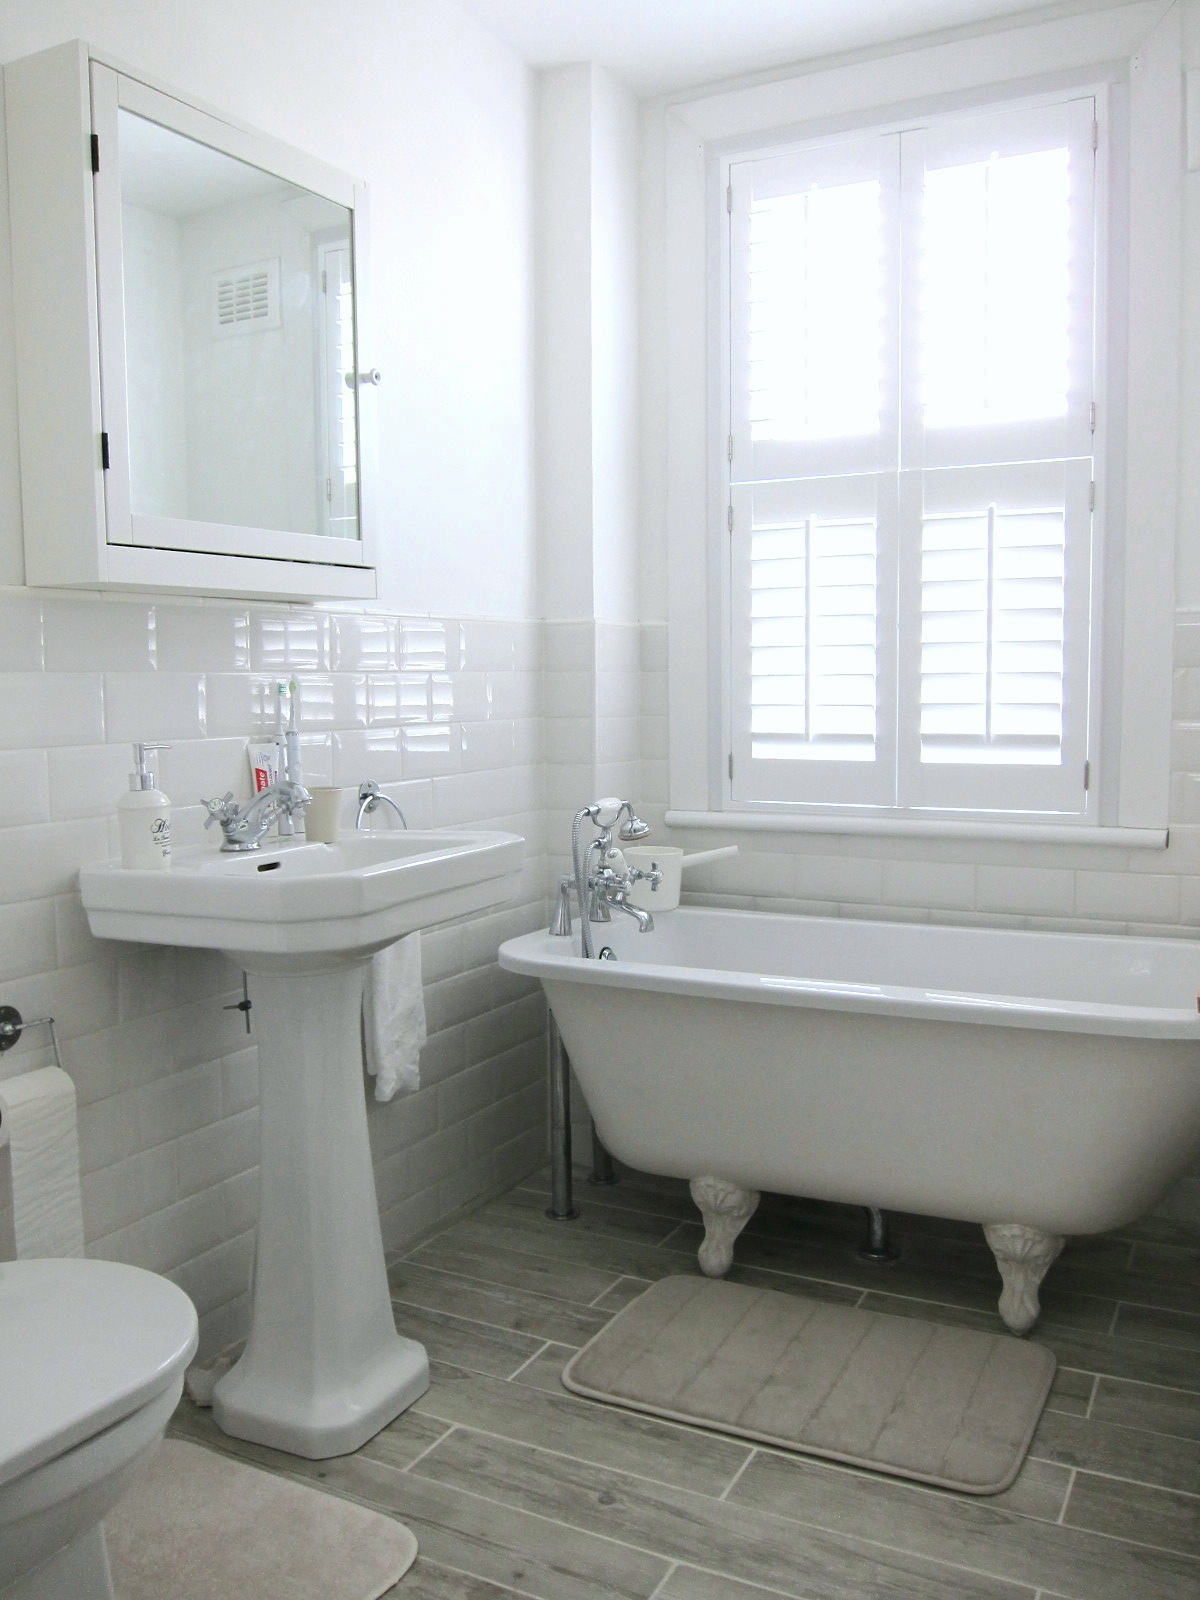 Bathroom decor before after lucy loves to eat - What do i need to clean my bathroom ...